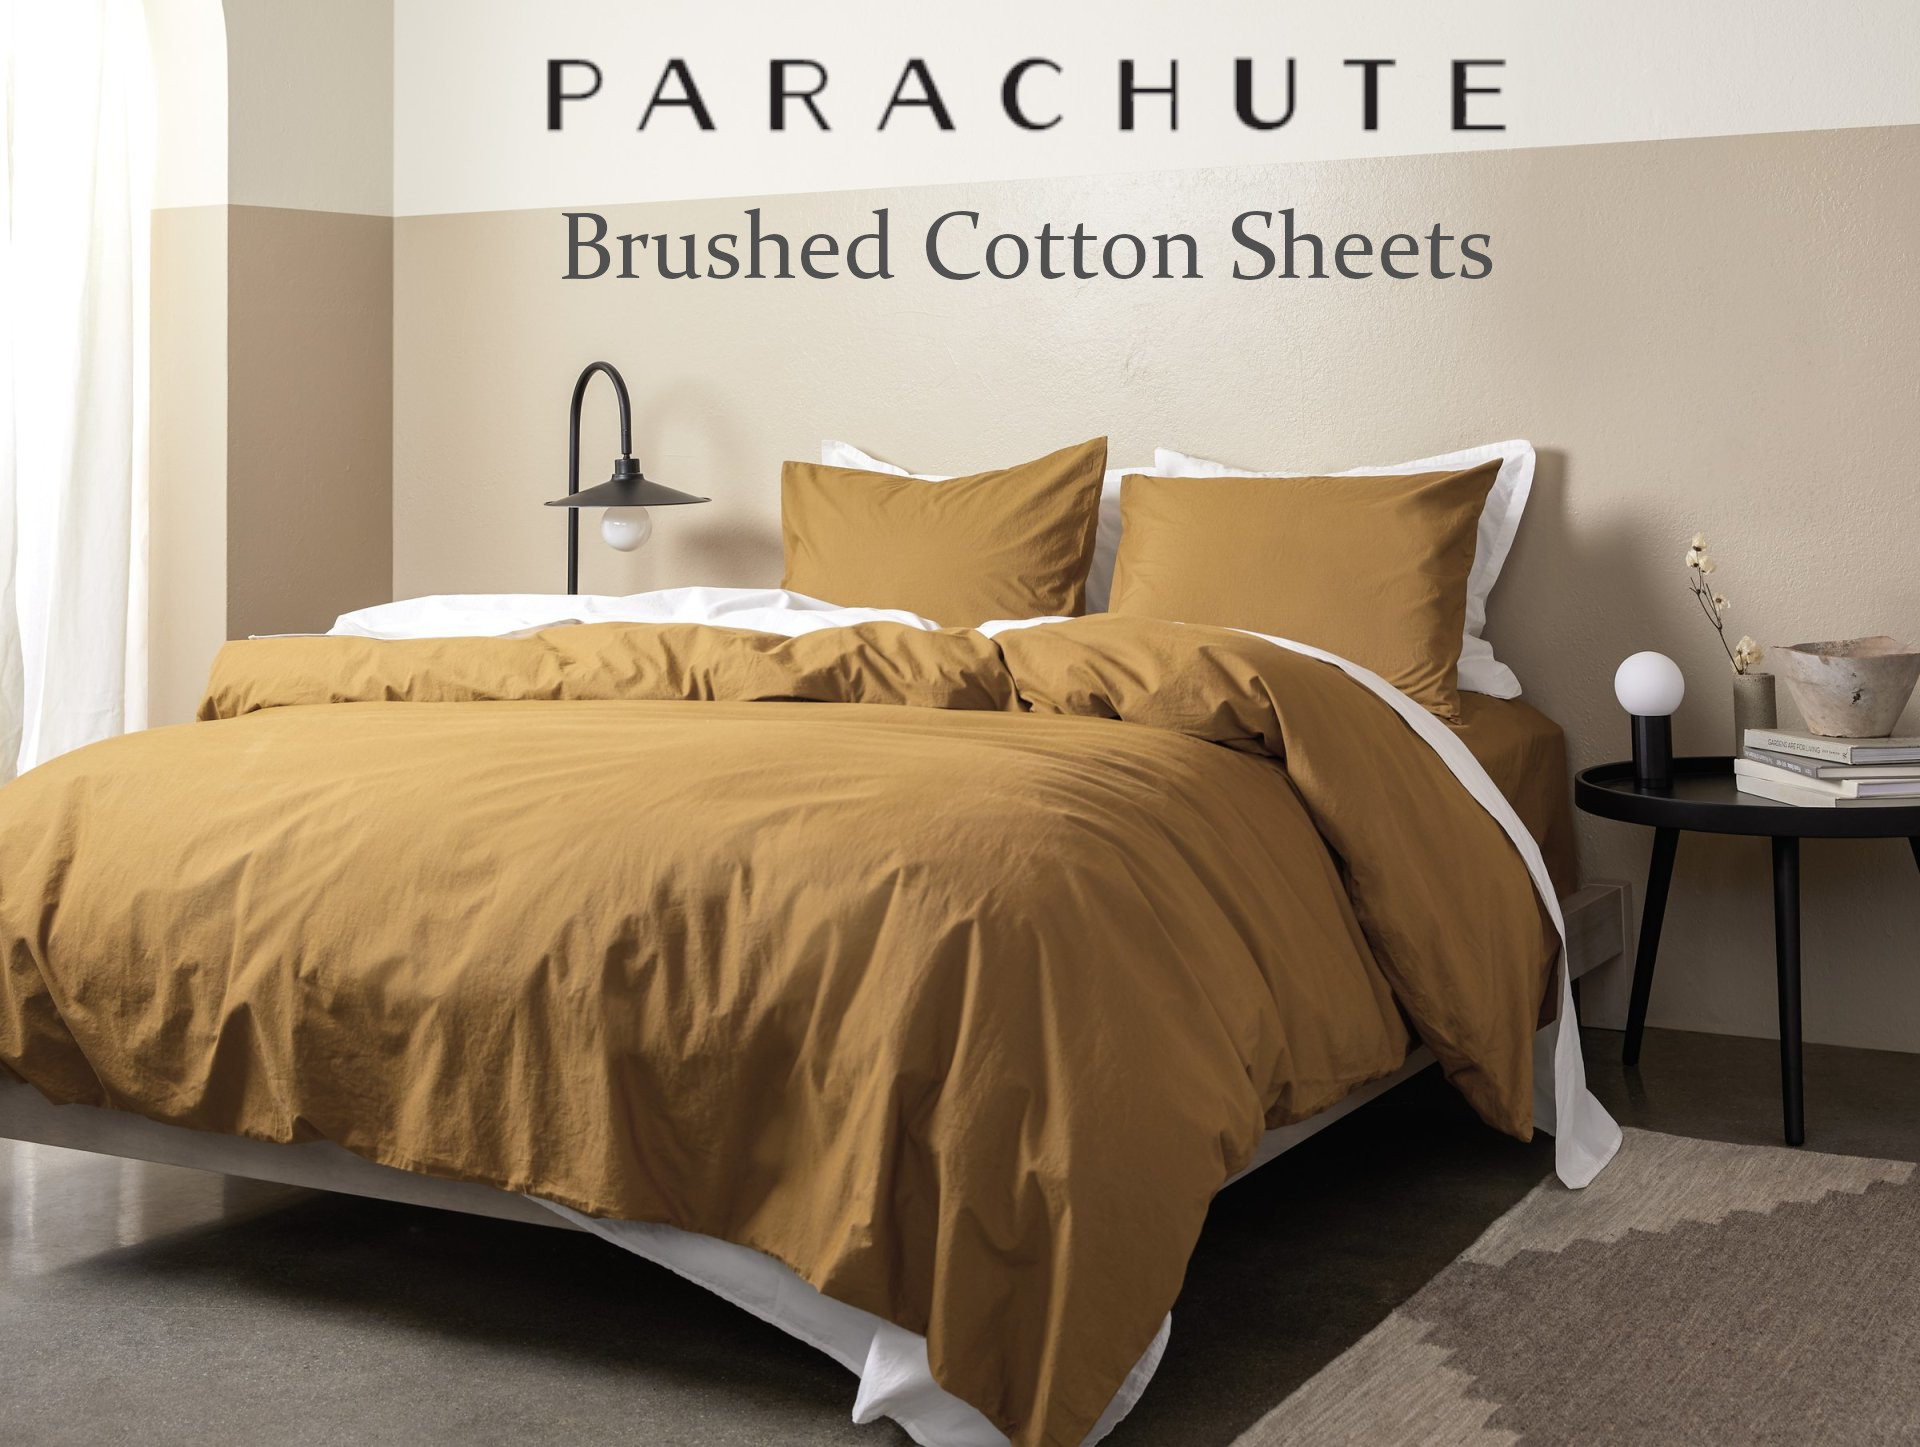 honest review over the brushed cotton sheets by Parachute